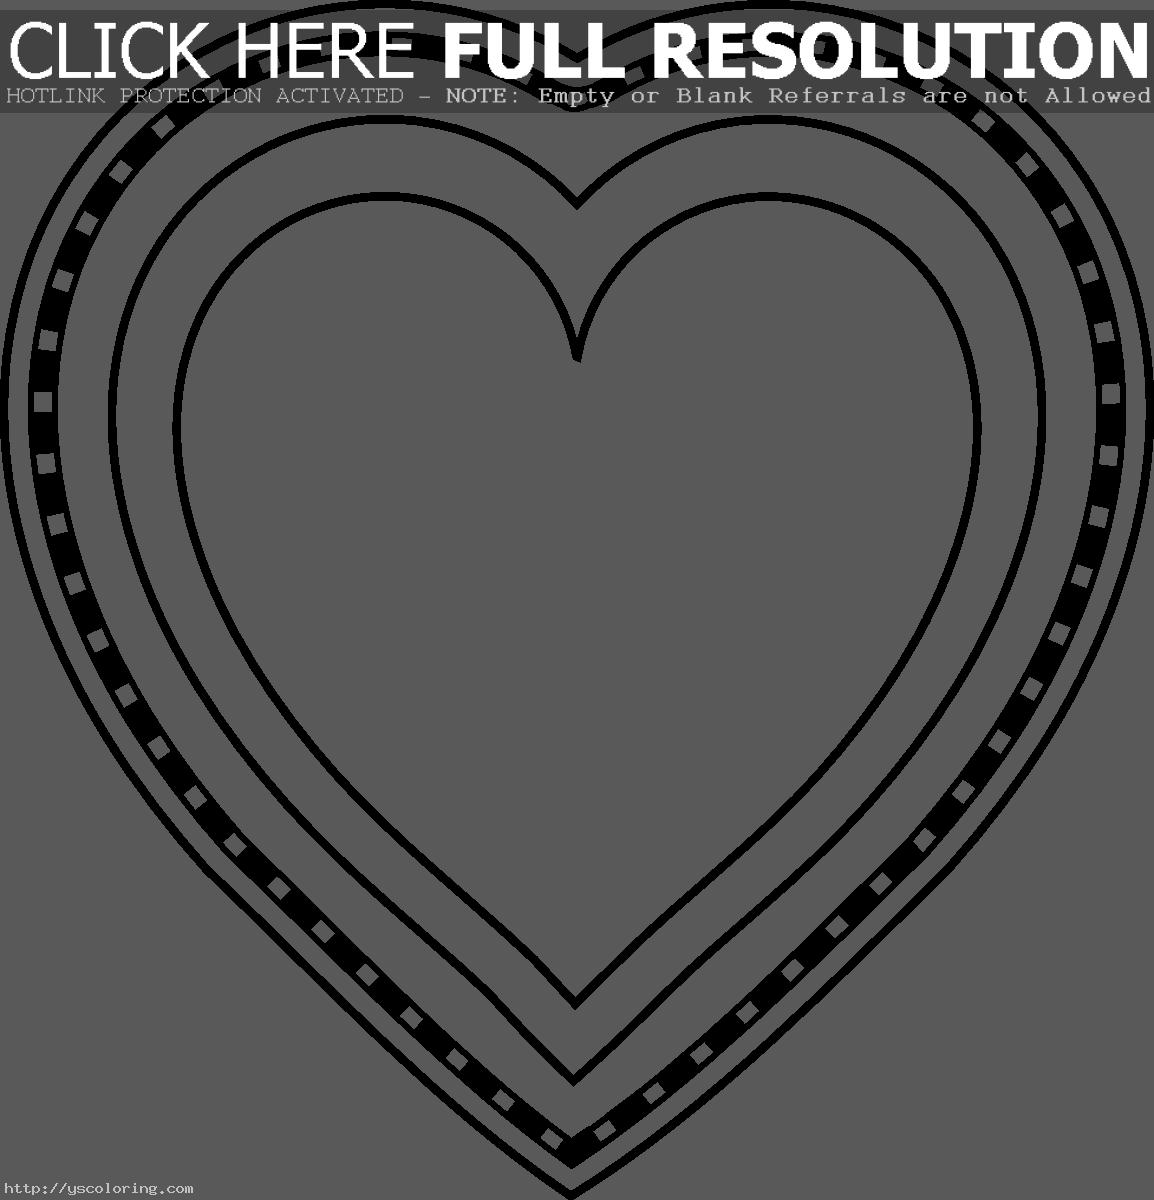 heart shaped earth clipart panda free clipart images